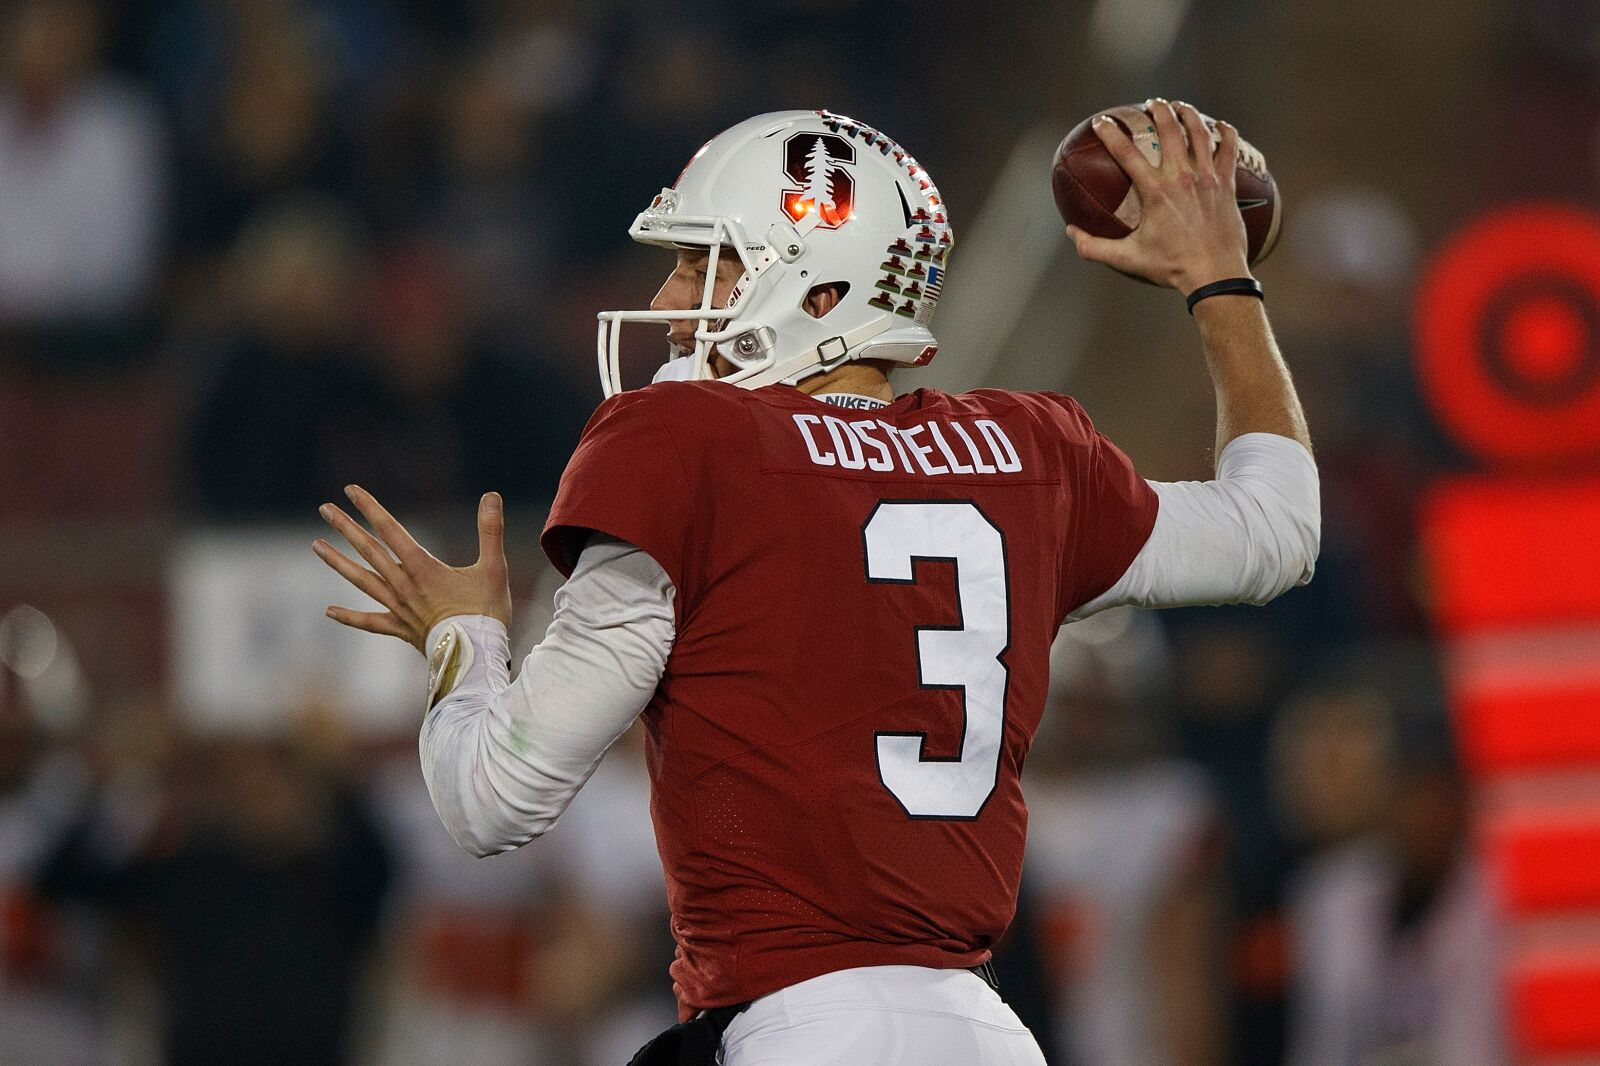 Stanford football 2019 season preview: Best and worst-case scenario